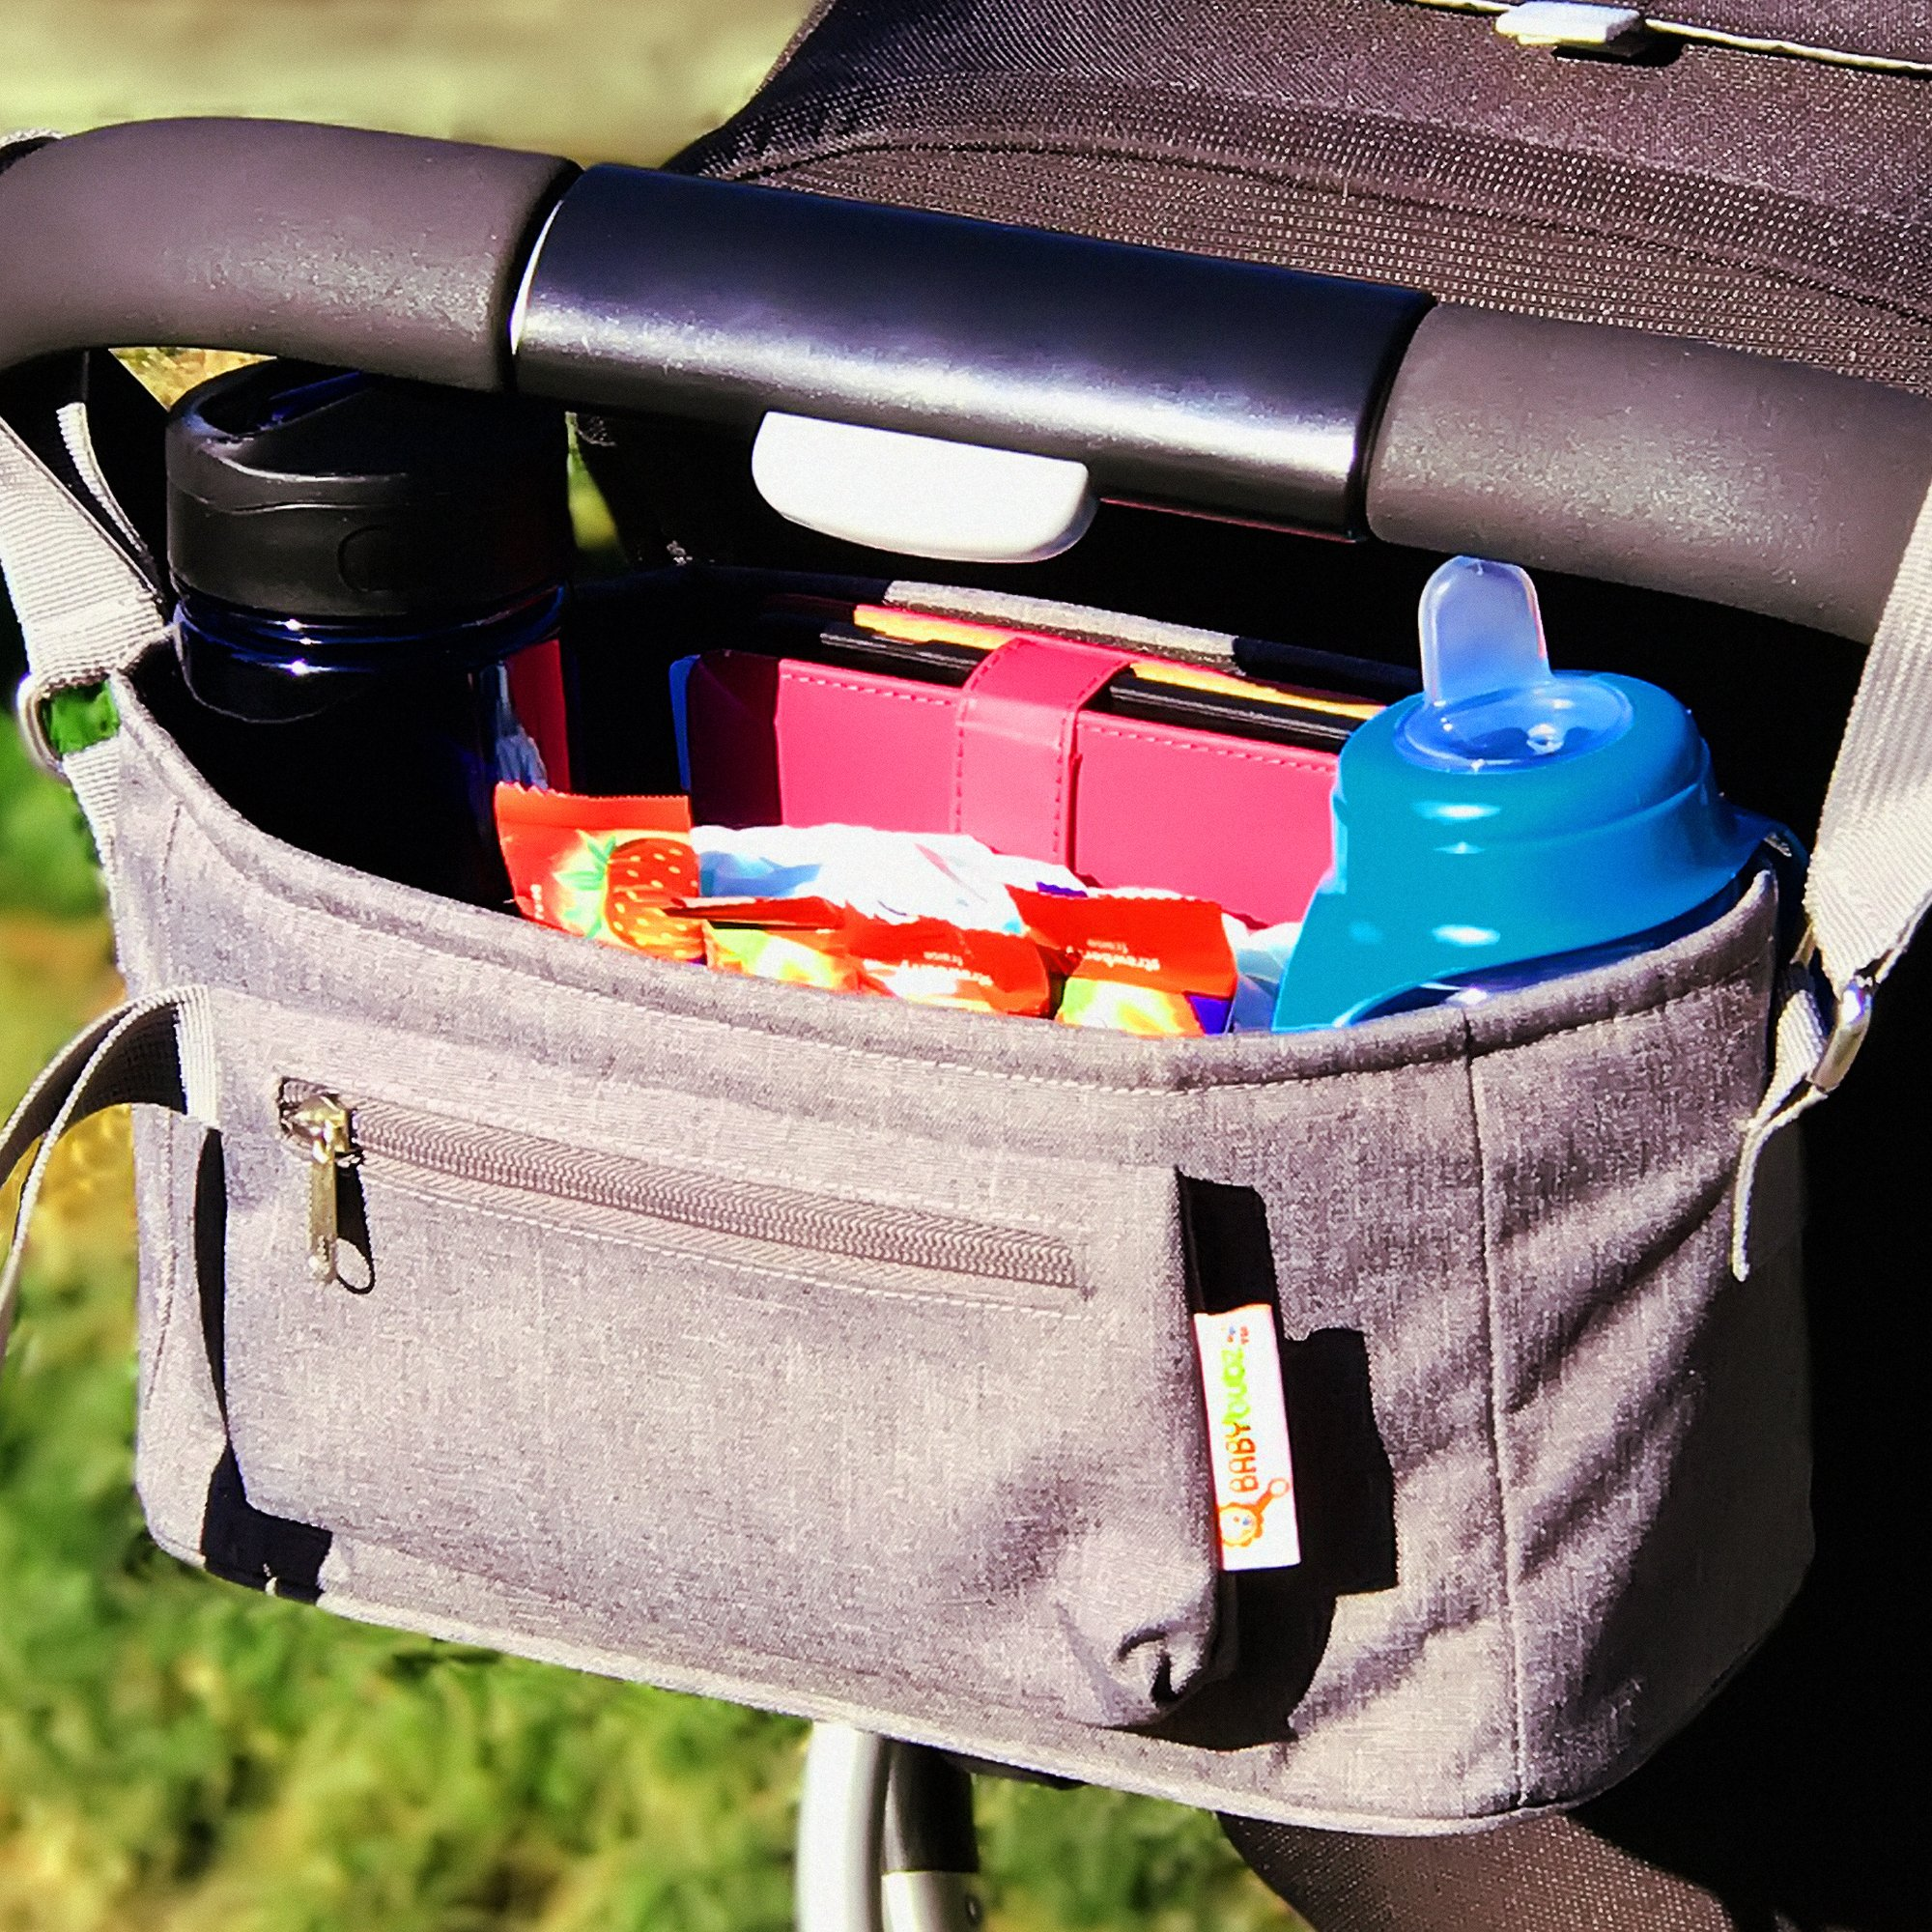 Baby Stroller Organizer by BabyBubz - Premium New Sleek Design - Durable Cup Holders - Universal Fit - tons of Storage for Phones, Keys, Diapers, Baby Toys, Snacks, Accessories - Best Shower Gift by BabyBubz (Image #4)